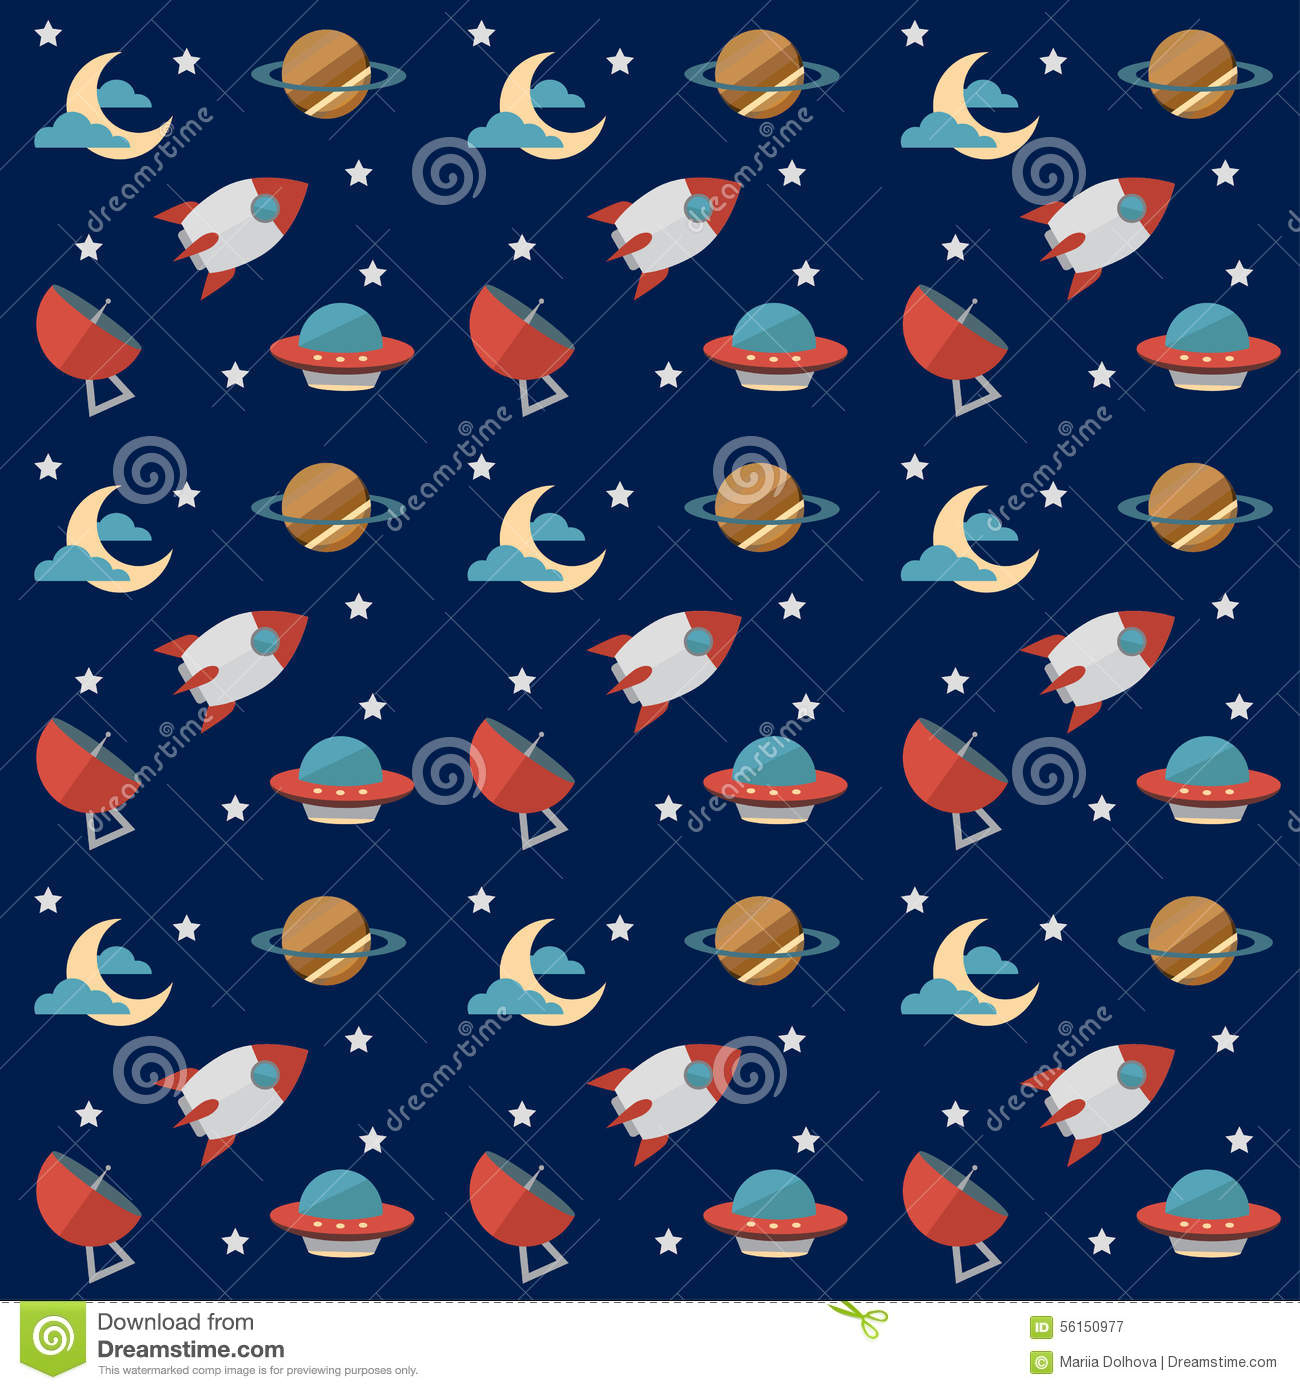 Mercury Hd Wallpaper Seamless Space Pattern With Rockets Planets Stars